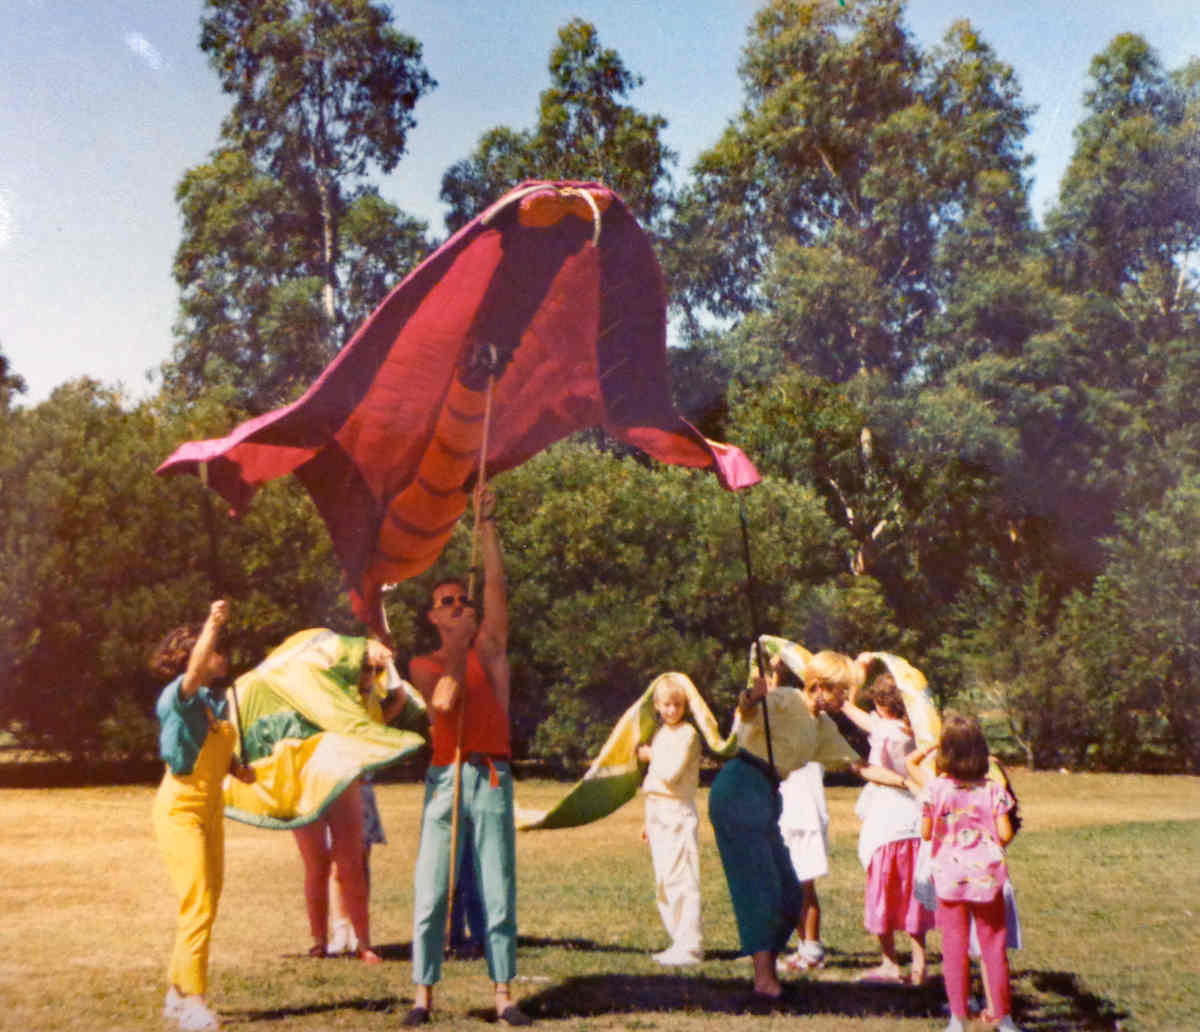 Andrew Handsen, Handspan Theatre man with children flying a butterfly puppet